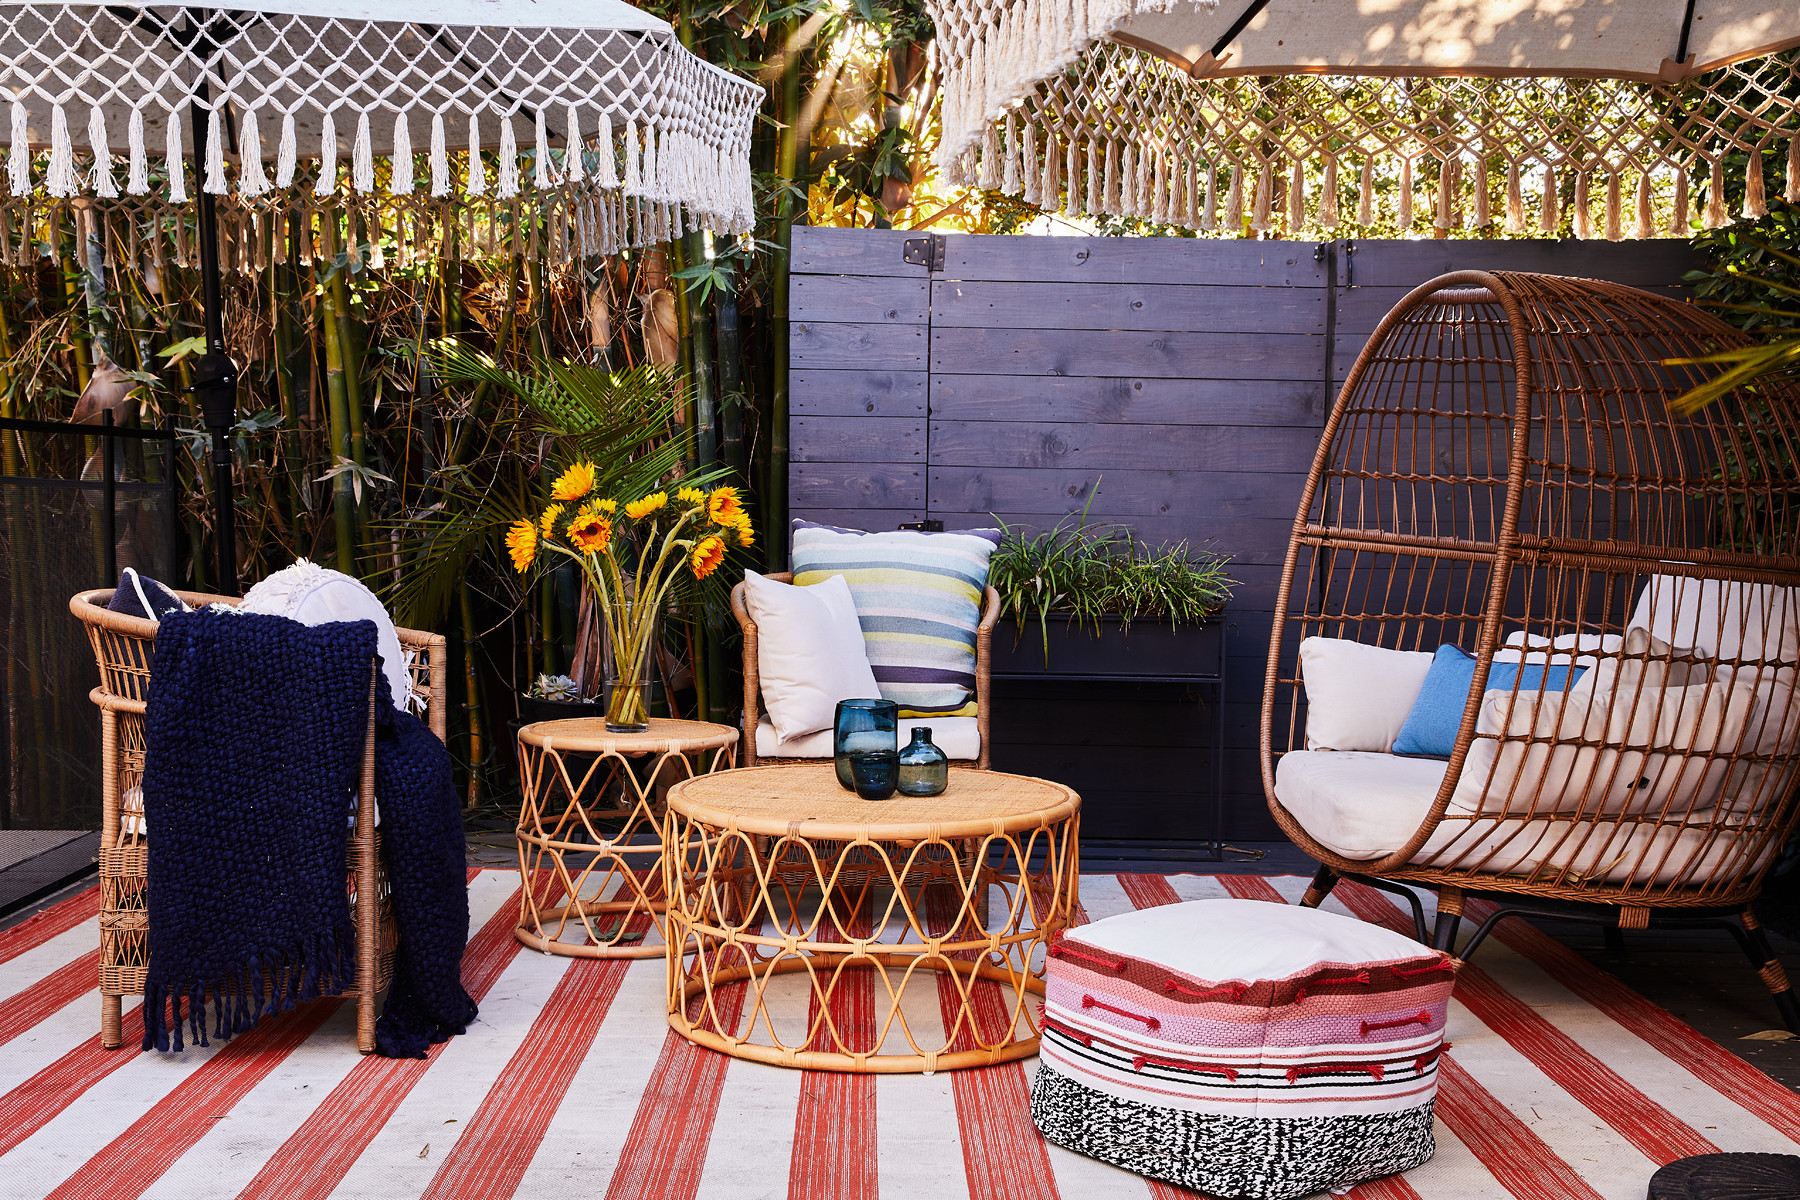 TheCali-cool scene is set with this bright and Bohemian patio design that's made for entertaining and family dinners in the warm L.A. air.TargetOpalhouseEgg Chair |Target Threshold Patio Chair |Target Opalhouse Coffee and Side Table Set |Target Rug |World Market Patio Umbrella |Target Pouf.